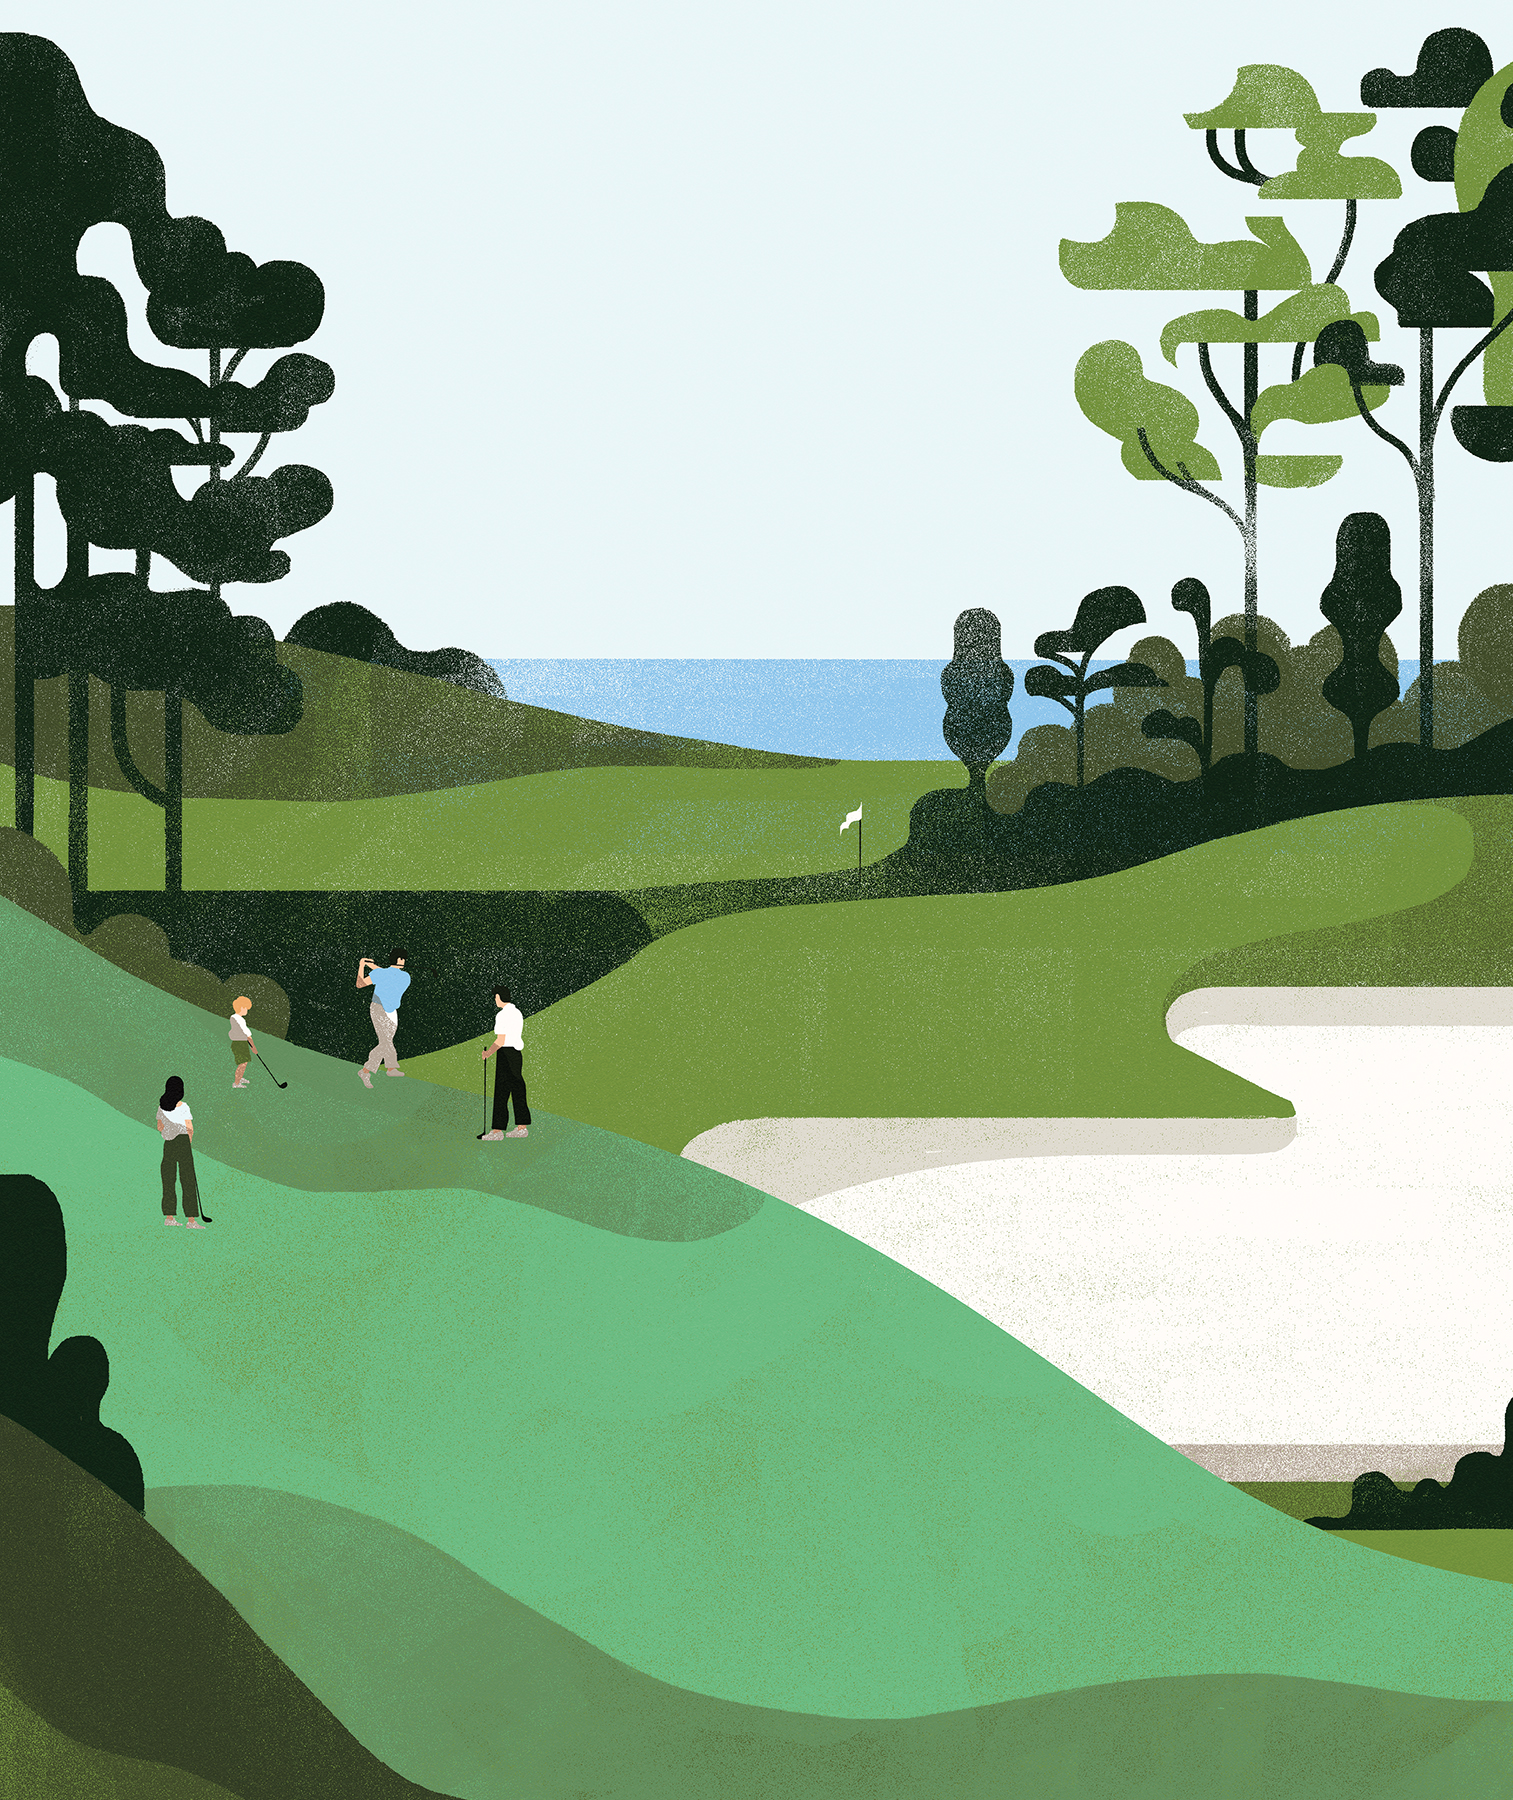 Illustration: people on the gold course